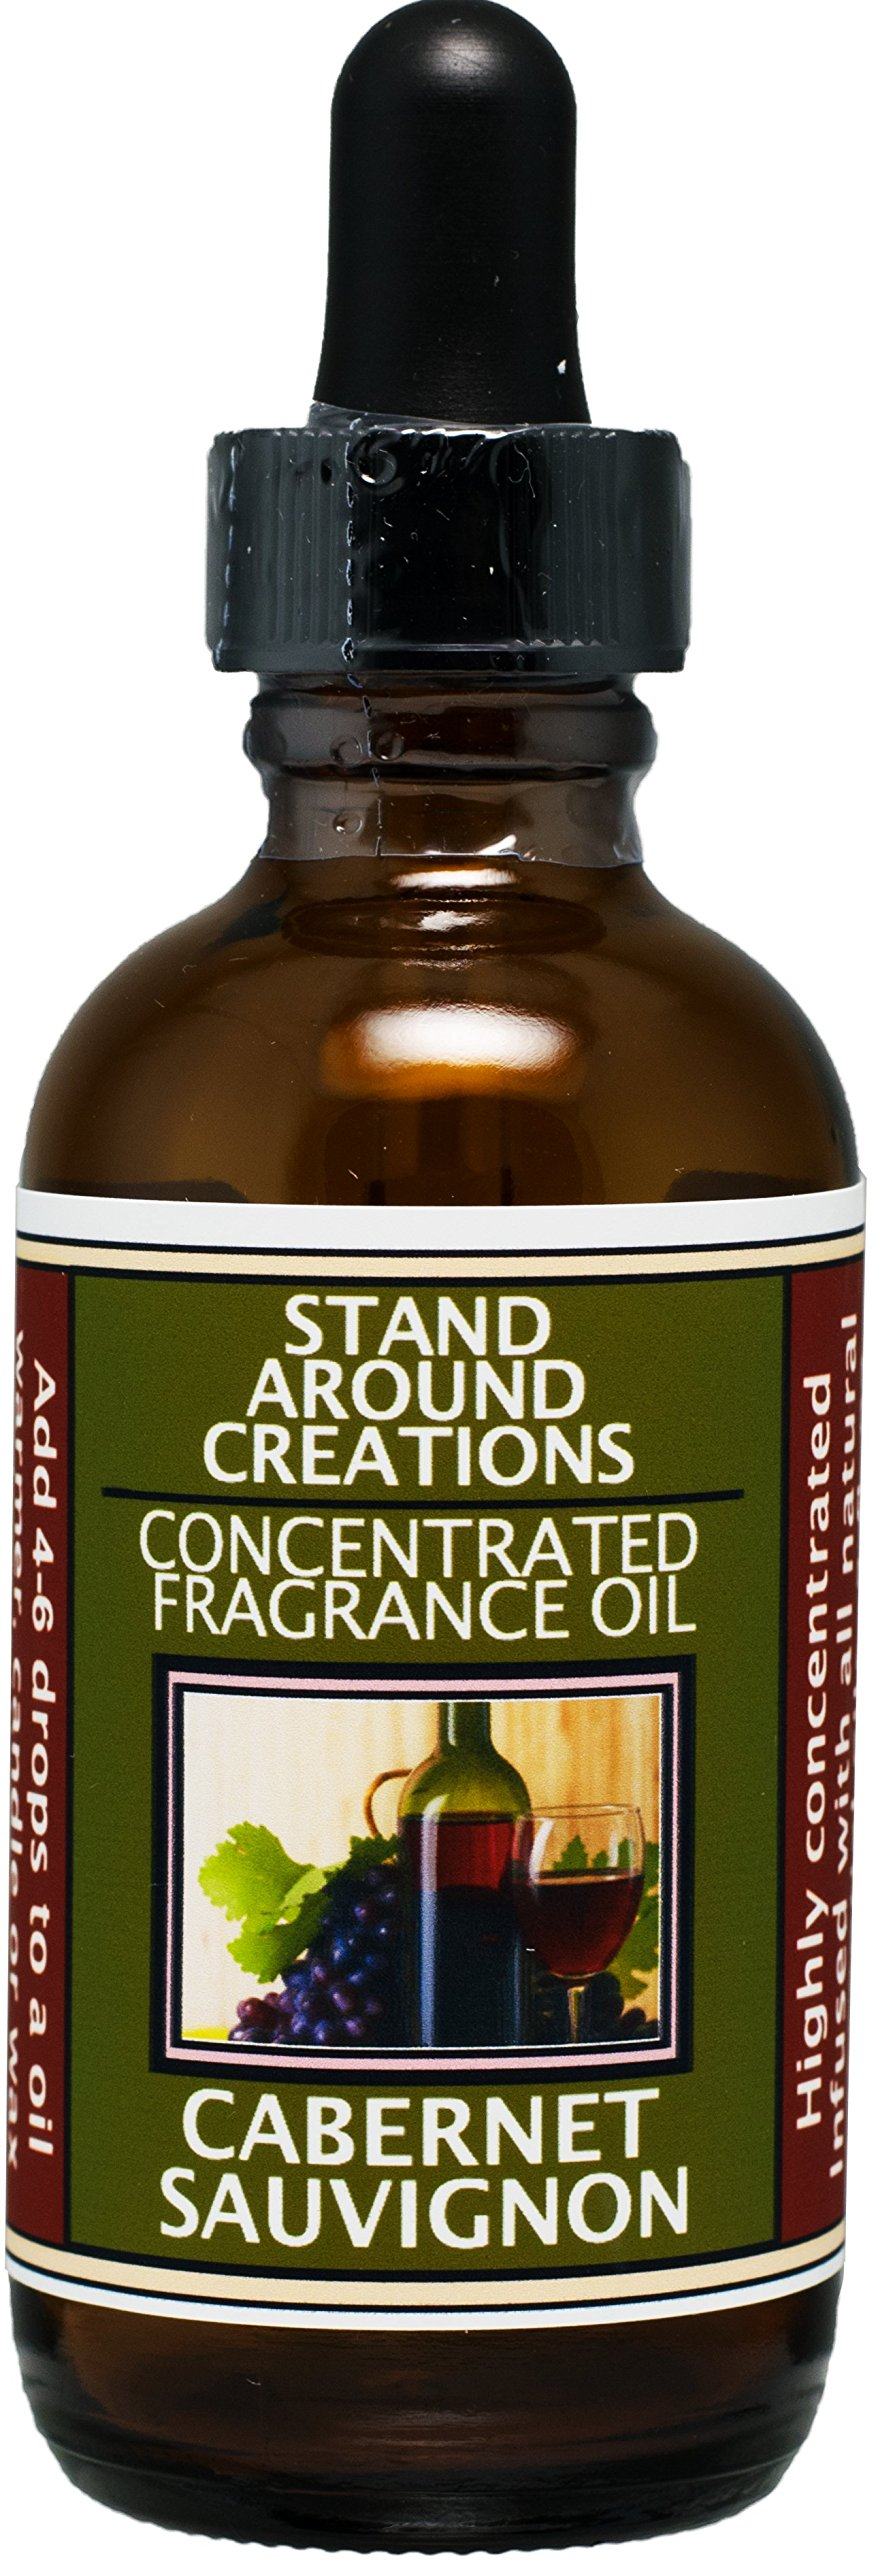 Concentrated Fragrance Oil - Scent - Cabernet Sauvignon- A sweet aroma of wild grapes w/sweet sugary notes. A wonderful aroma of red sweet wine.Infused w/essential oil. (2 fl.oz.)